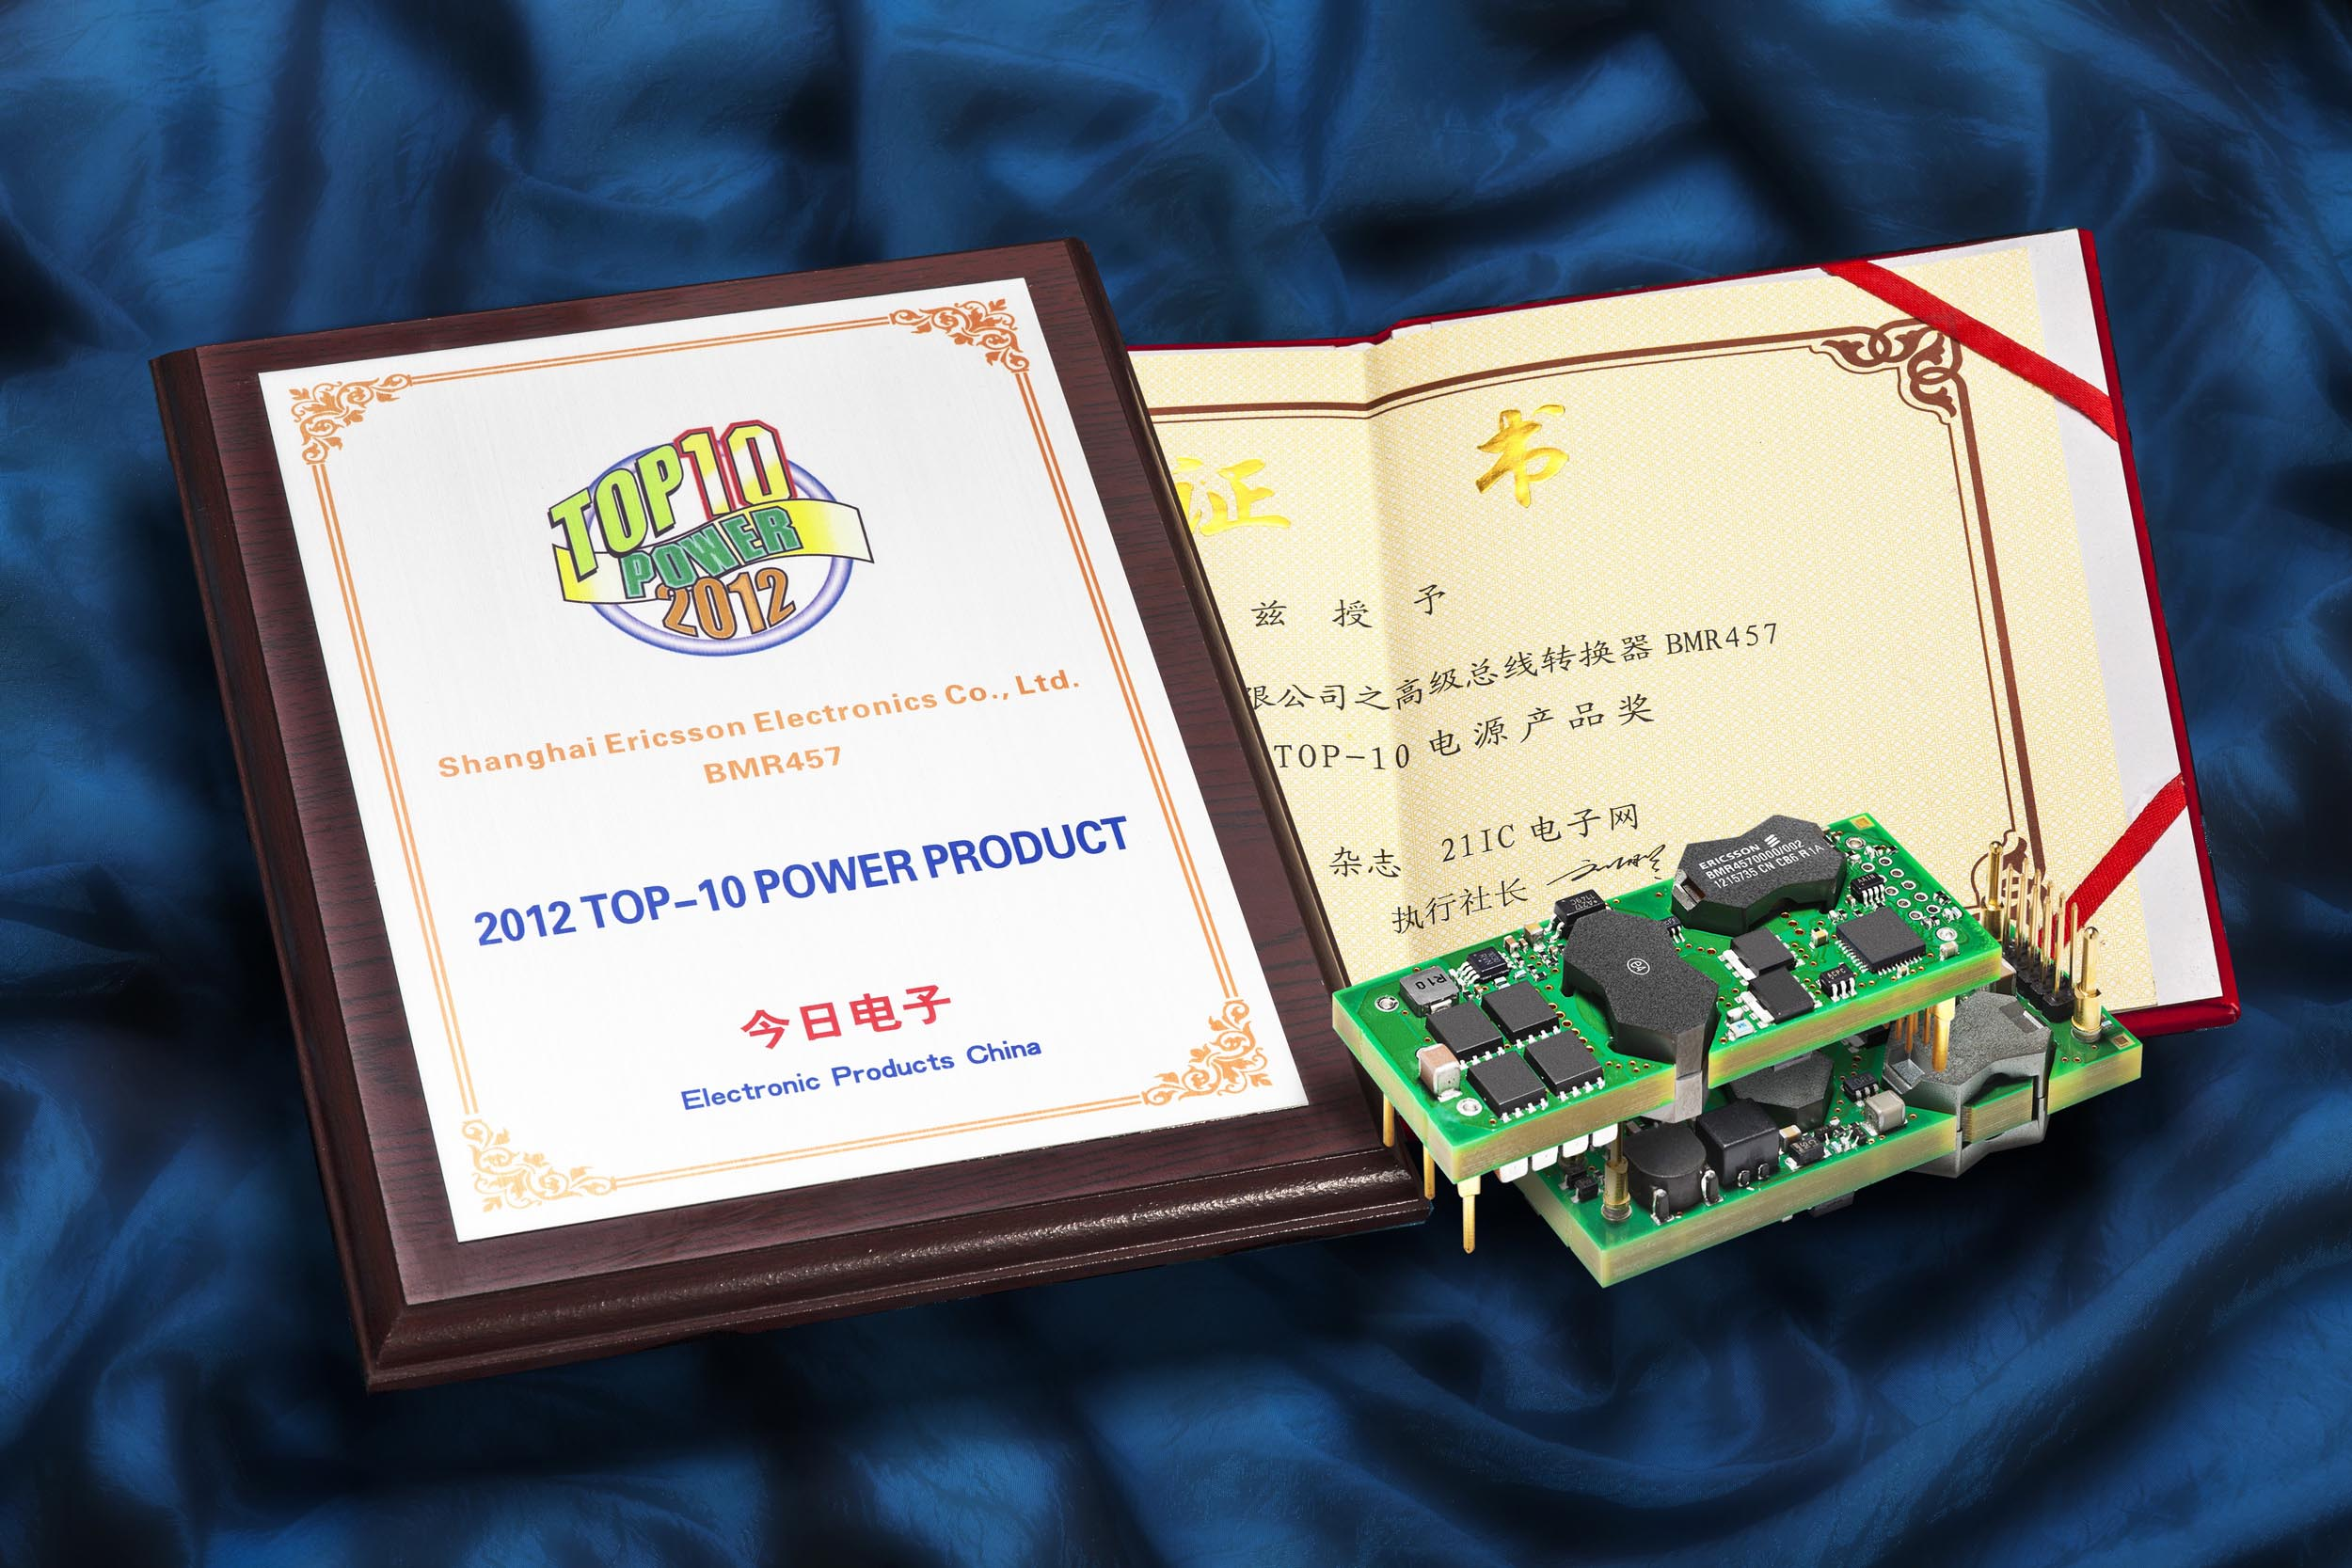 Ericsson Digital Power module wins Electronic Products China Award